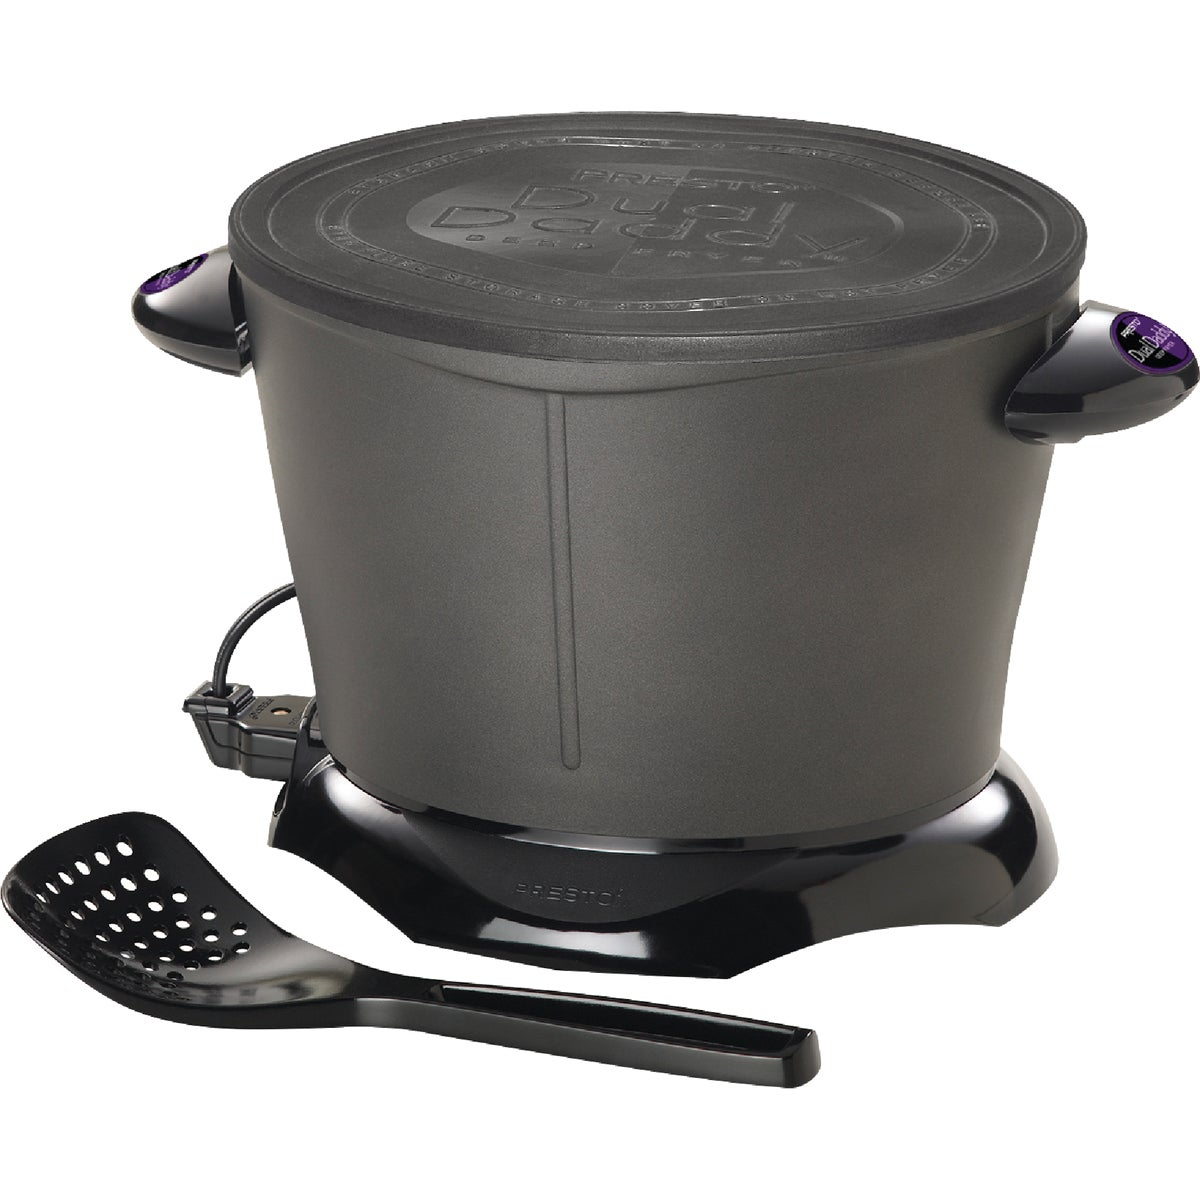 DADDY DEEP FRYER - 05450 by National Presto Ind